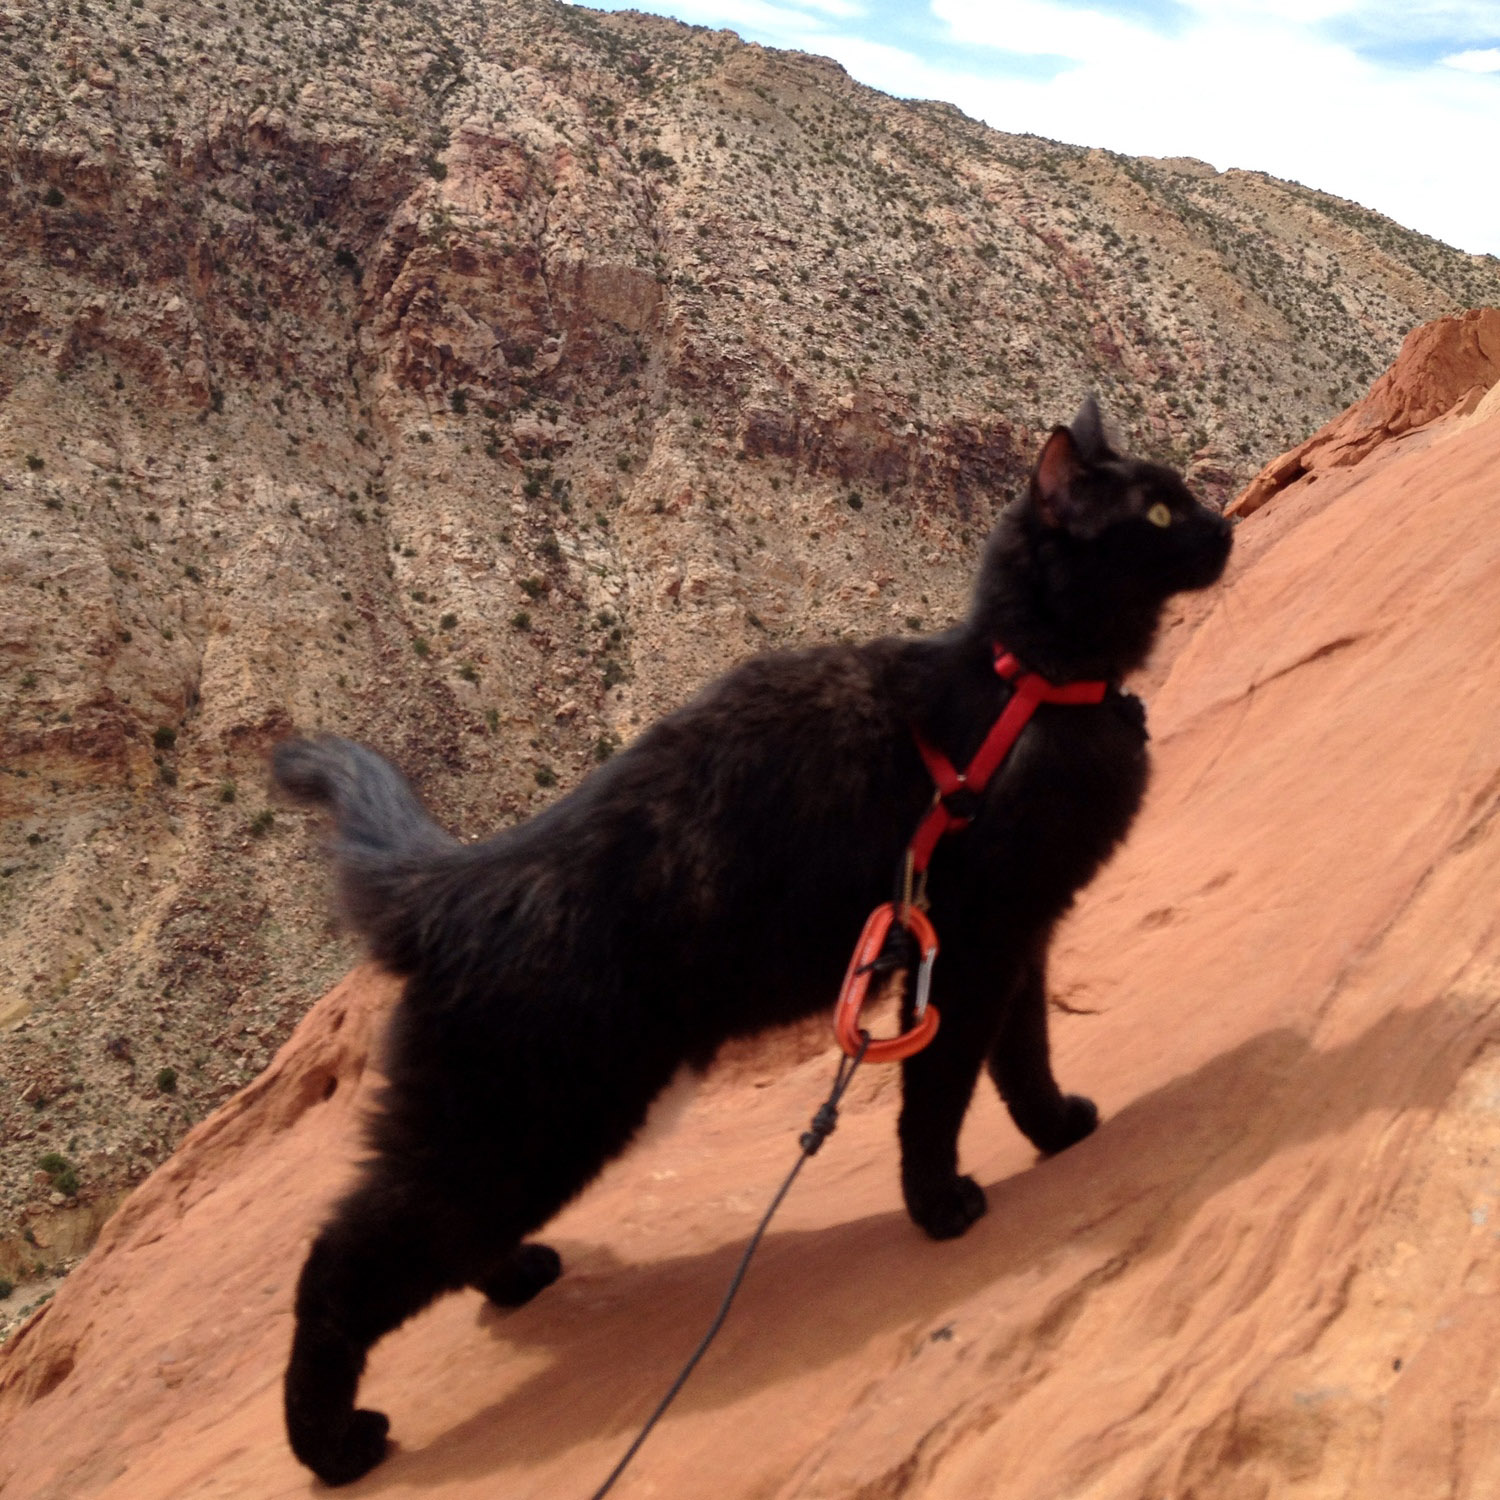 Craig Armstrong frequently takes his cat, Millie, climbing in Utah.